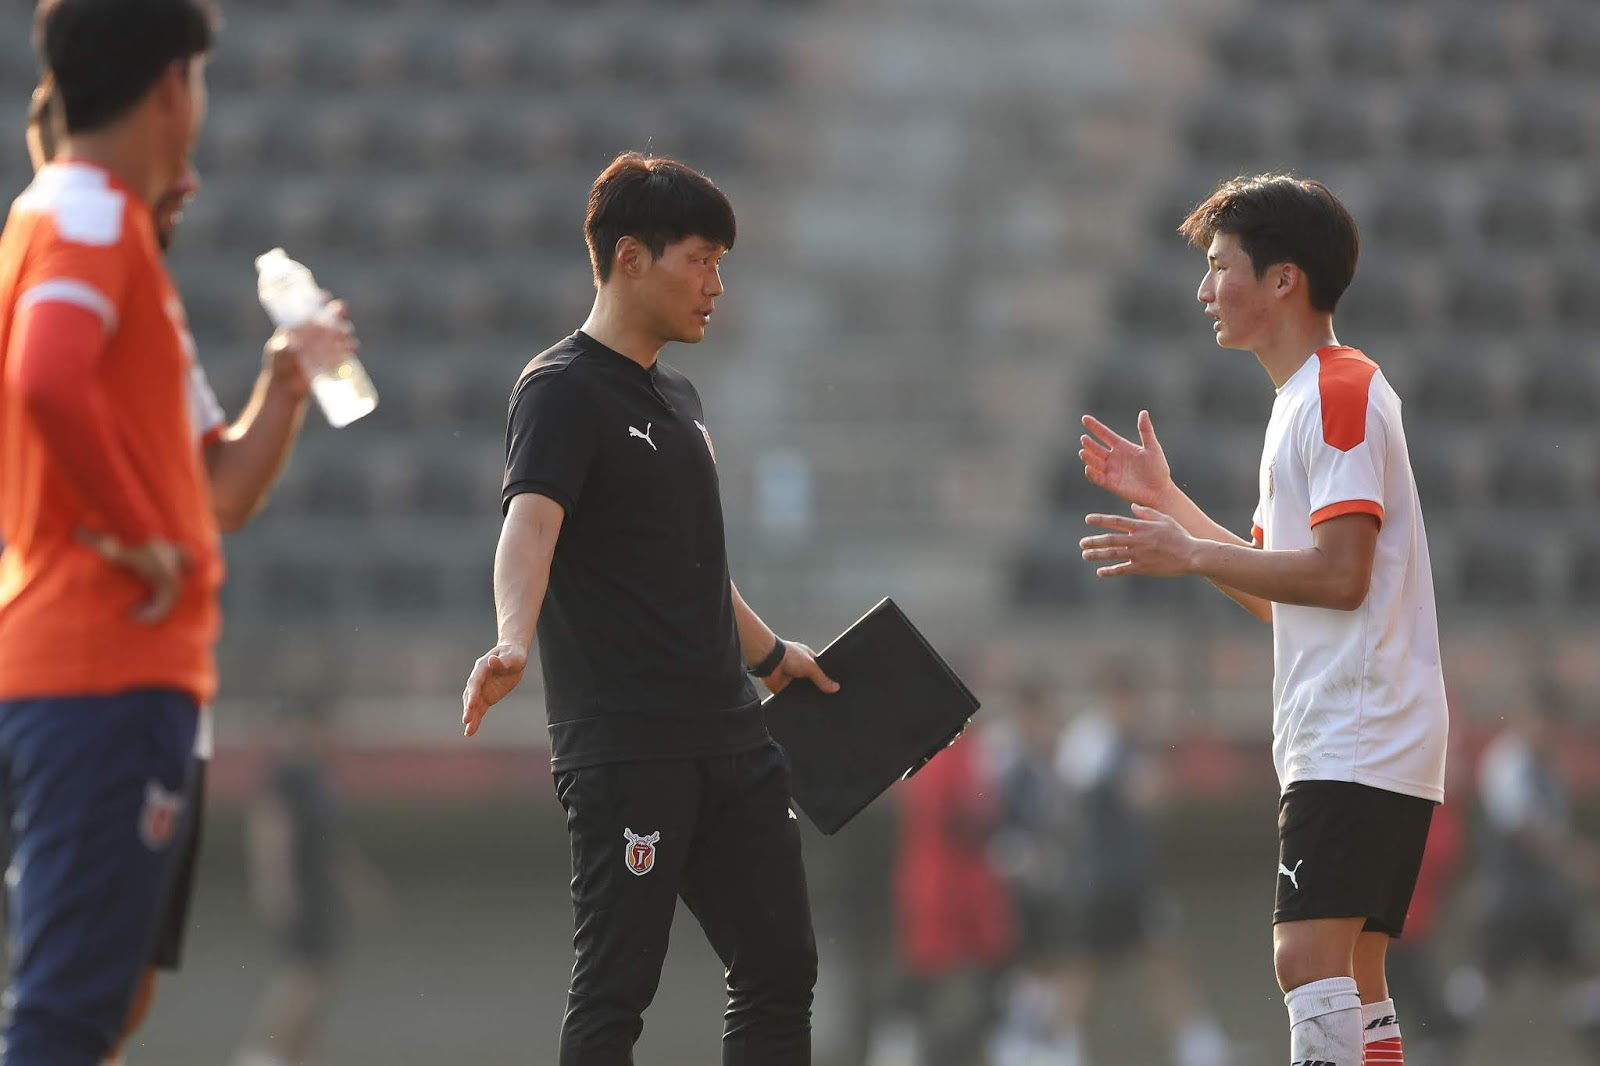 Jeju United training in Chang Rai, Thailand, February 1st, 2020. Nam Ki-il instructs Lee Dong-ryul.